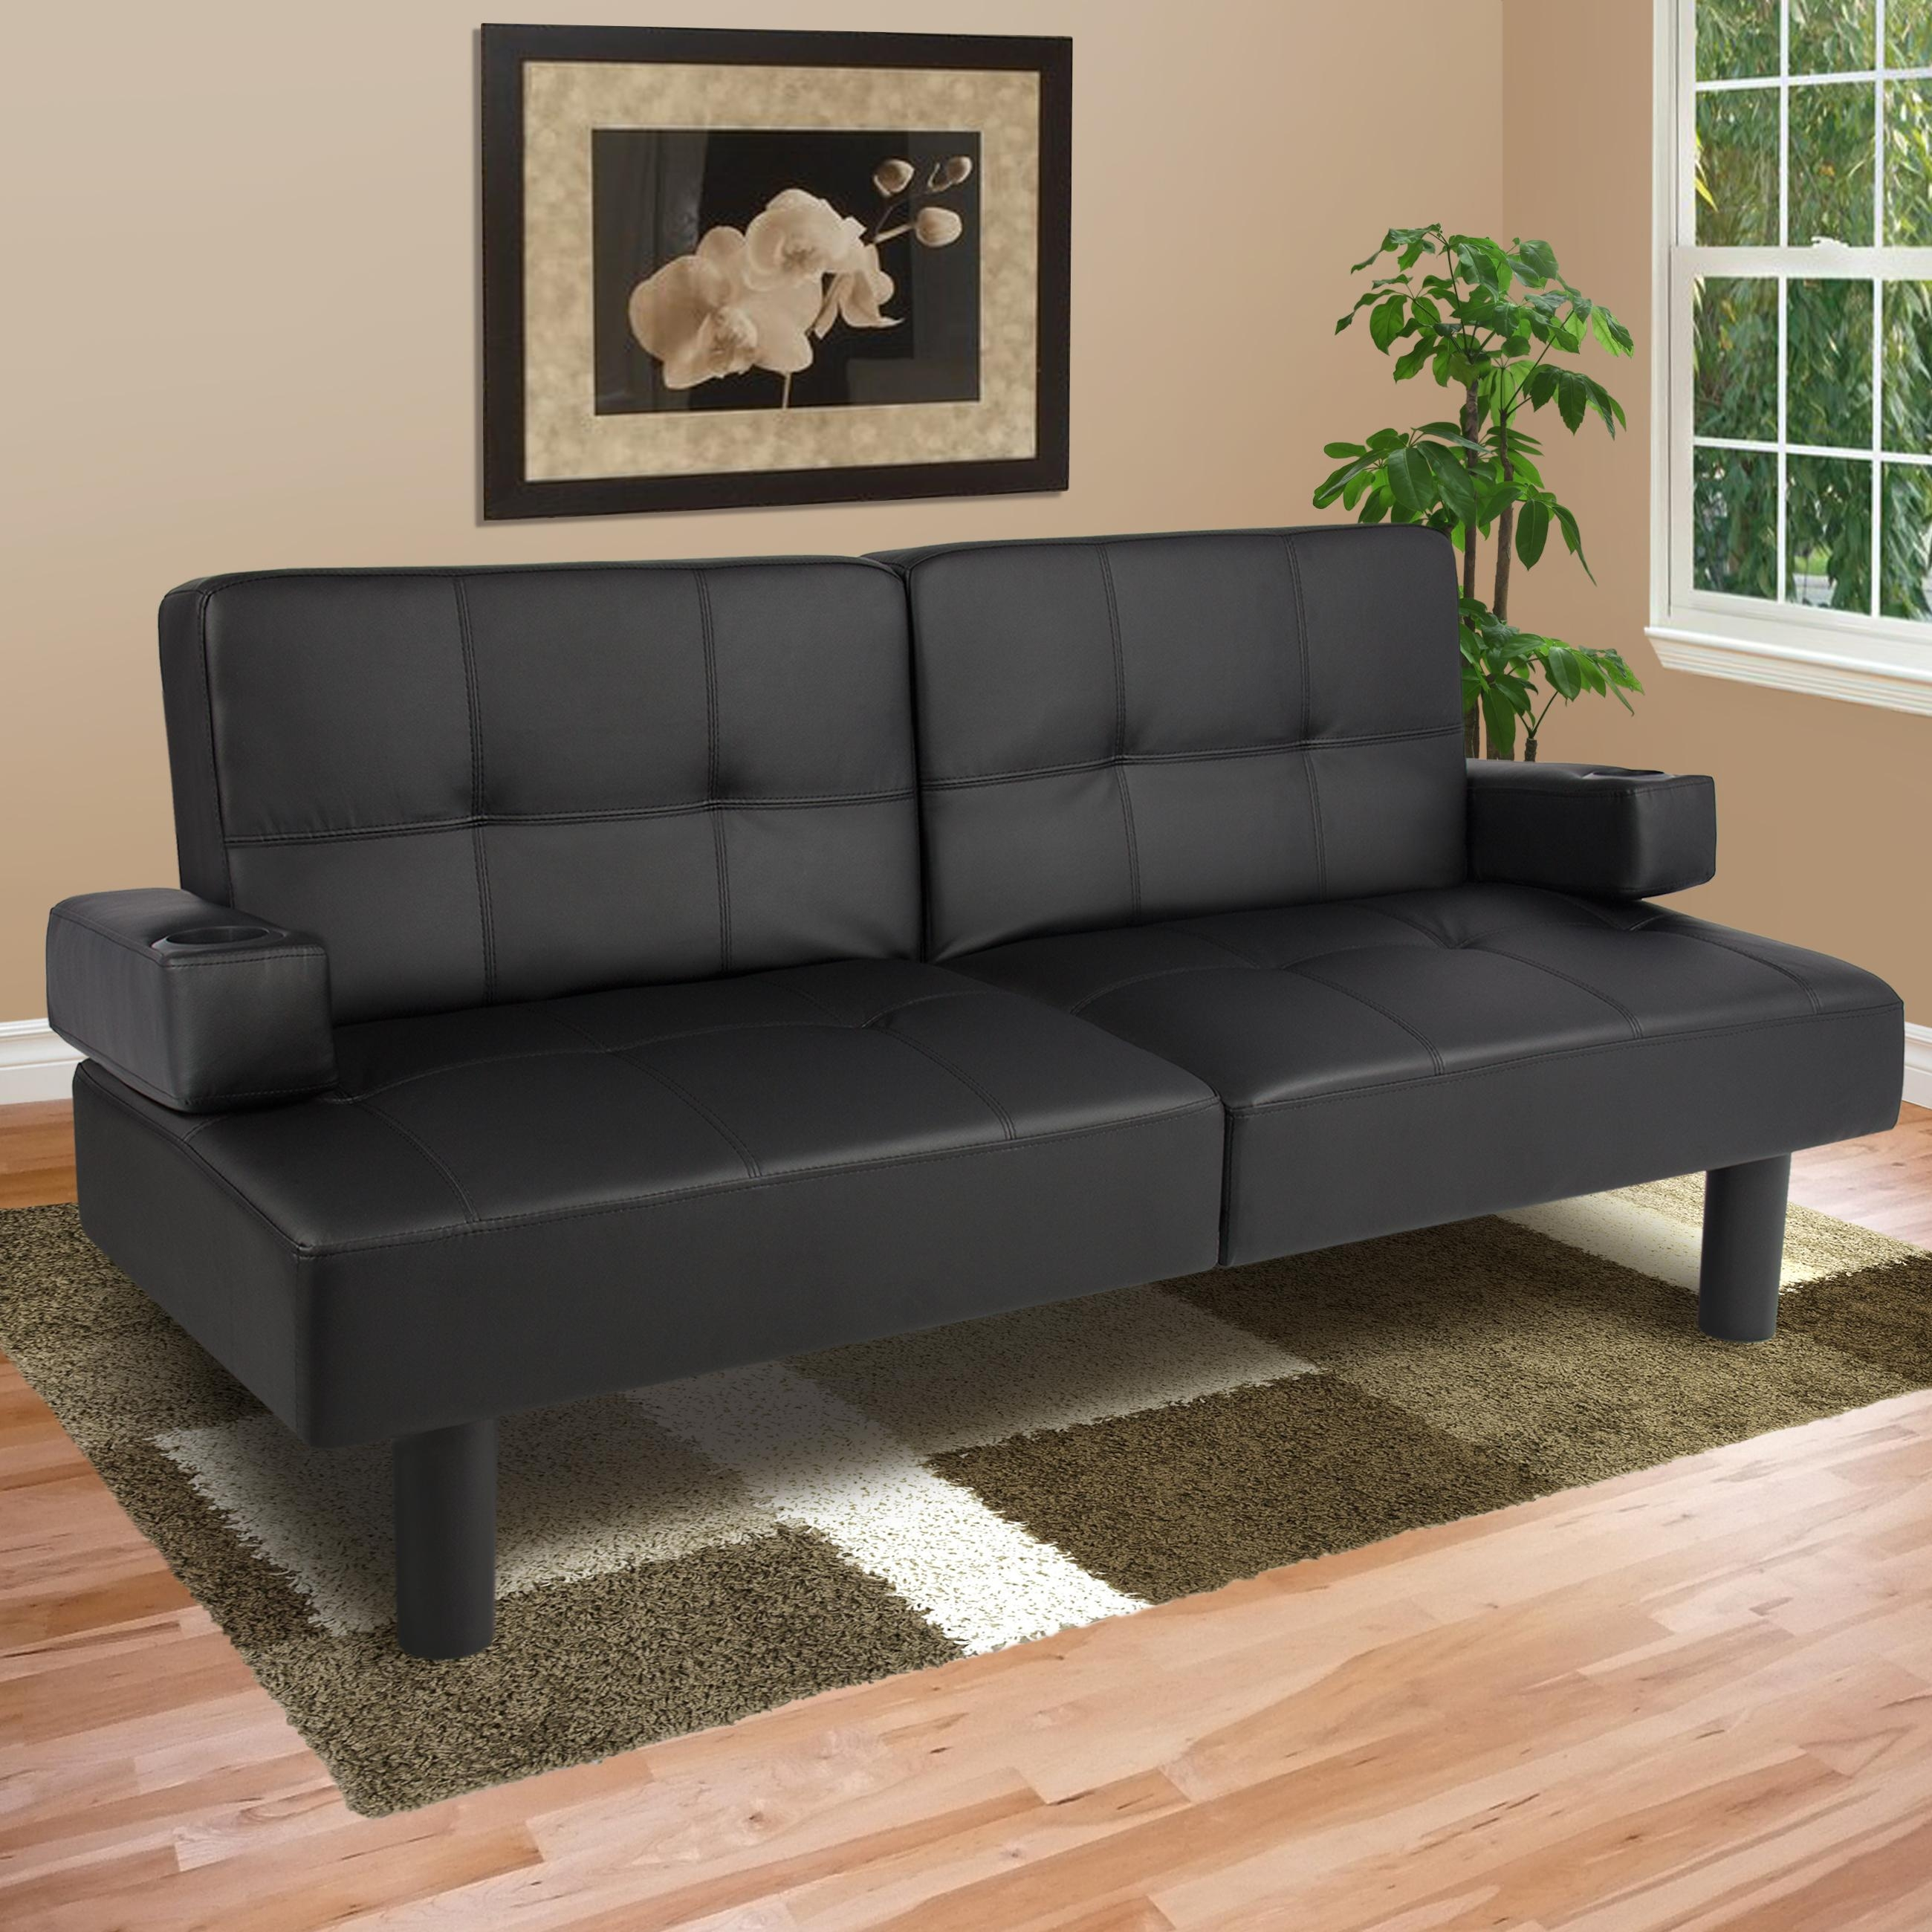 Furniture: Target Sofa Bed | Leather Futon Walmart | Fold Out Throughout Target Couch Beds (View 12 of 20)